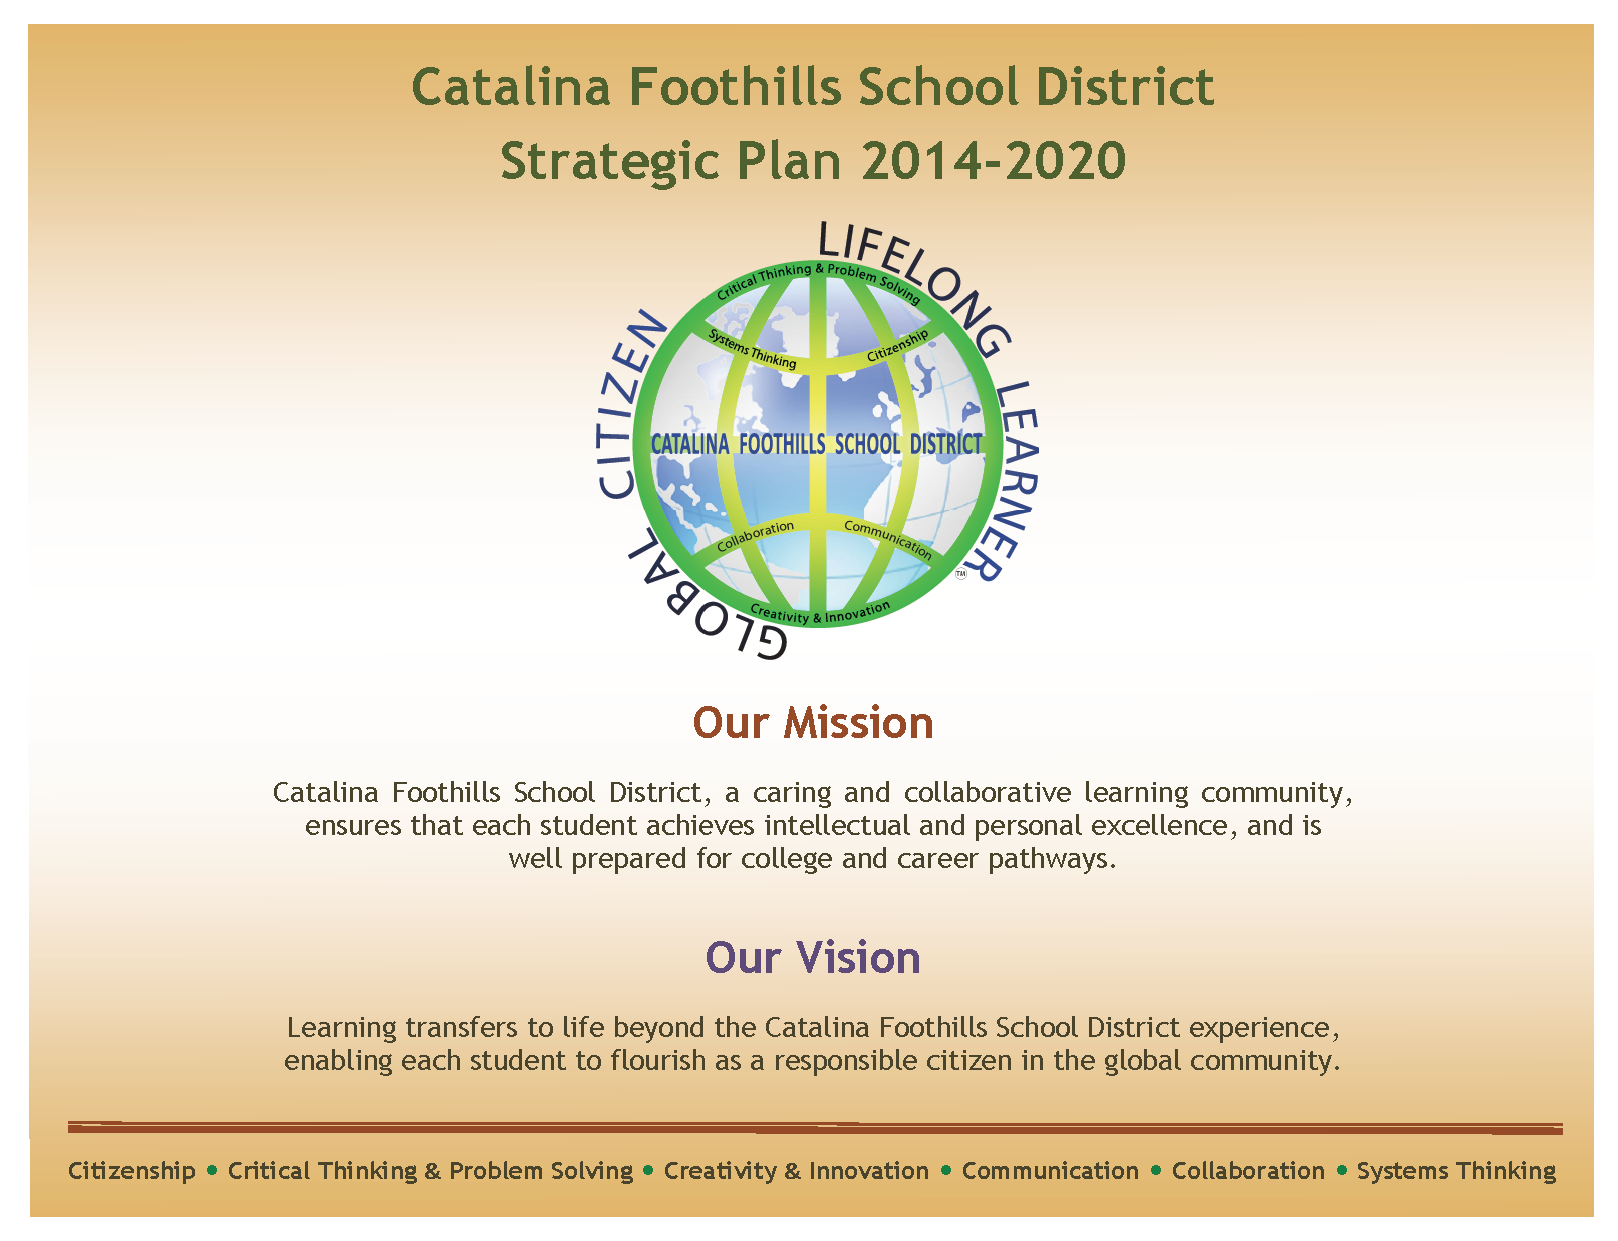 CFSD Strategic Plan 2014-2020